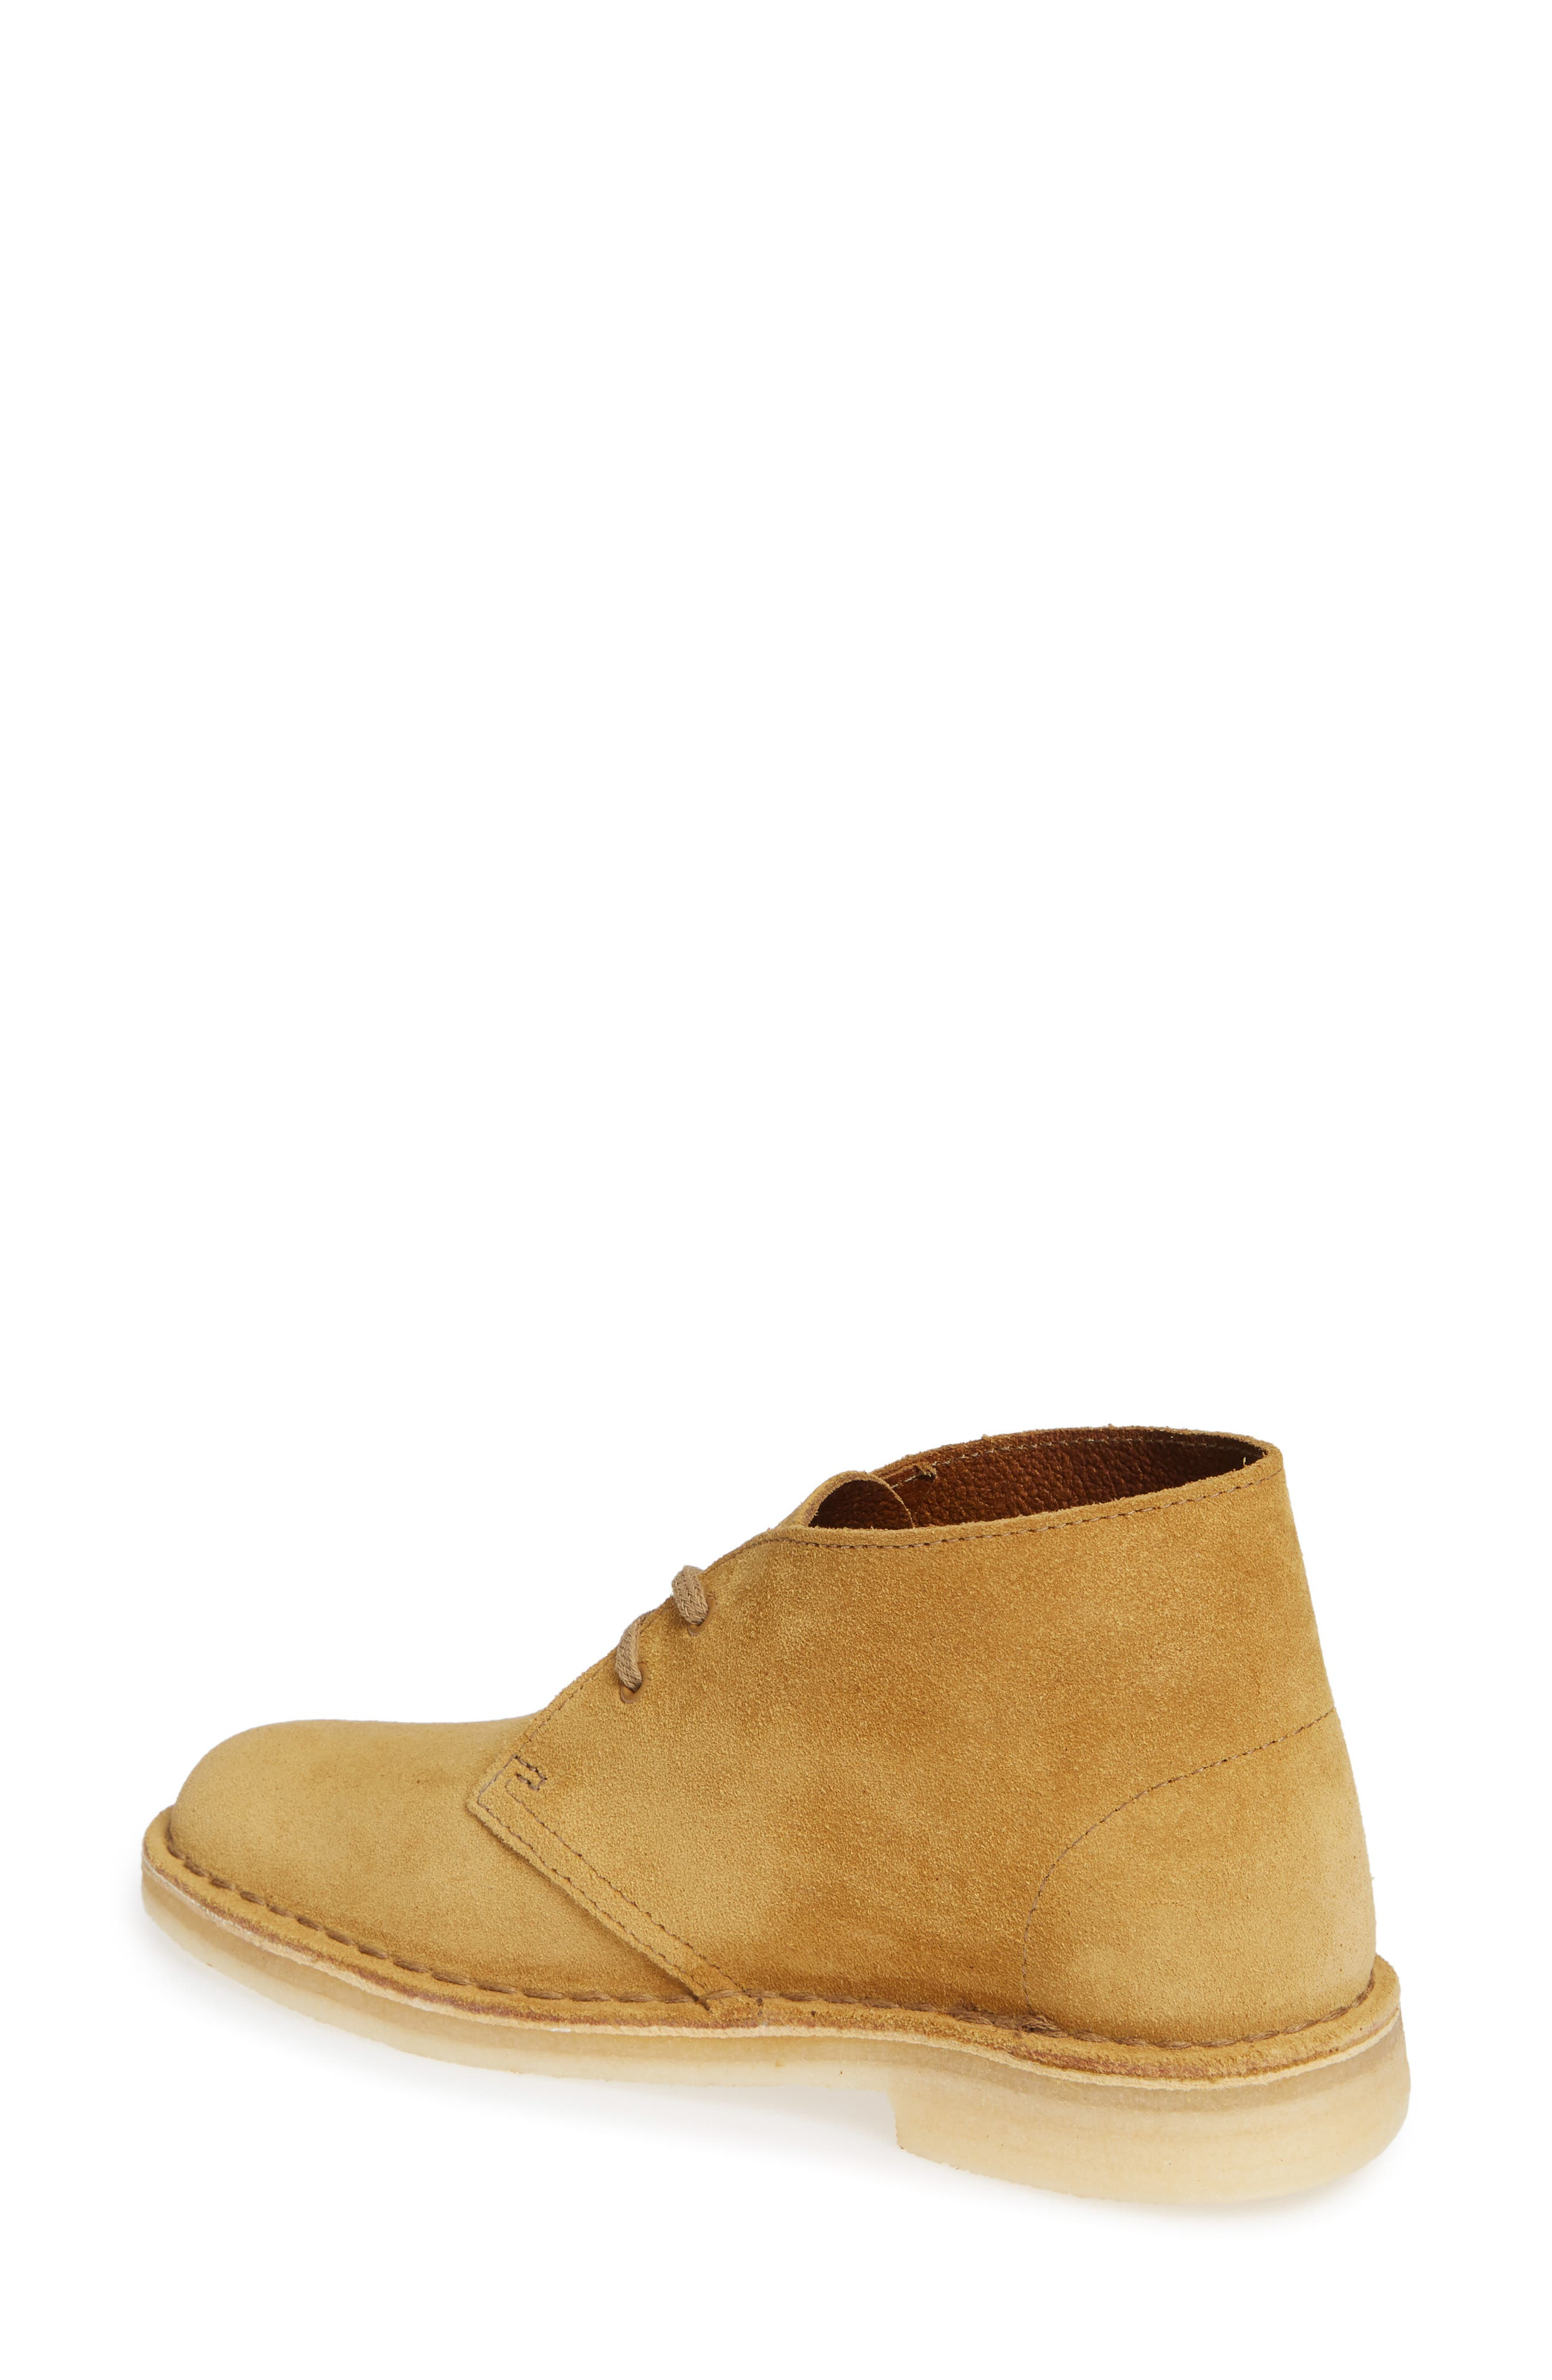 Desert Bootie,                             Alternate thumbnail 2, color,                             Oak Suede